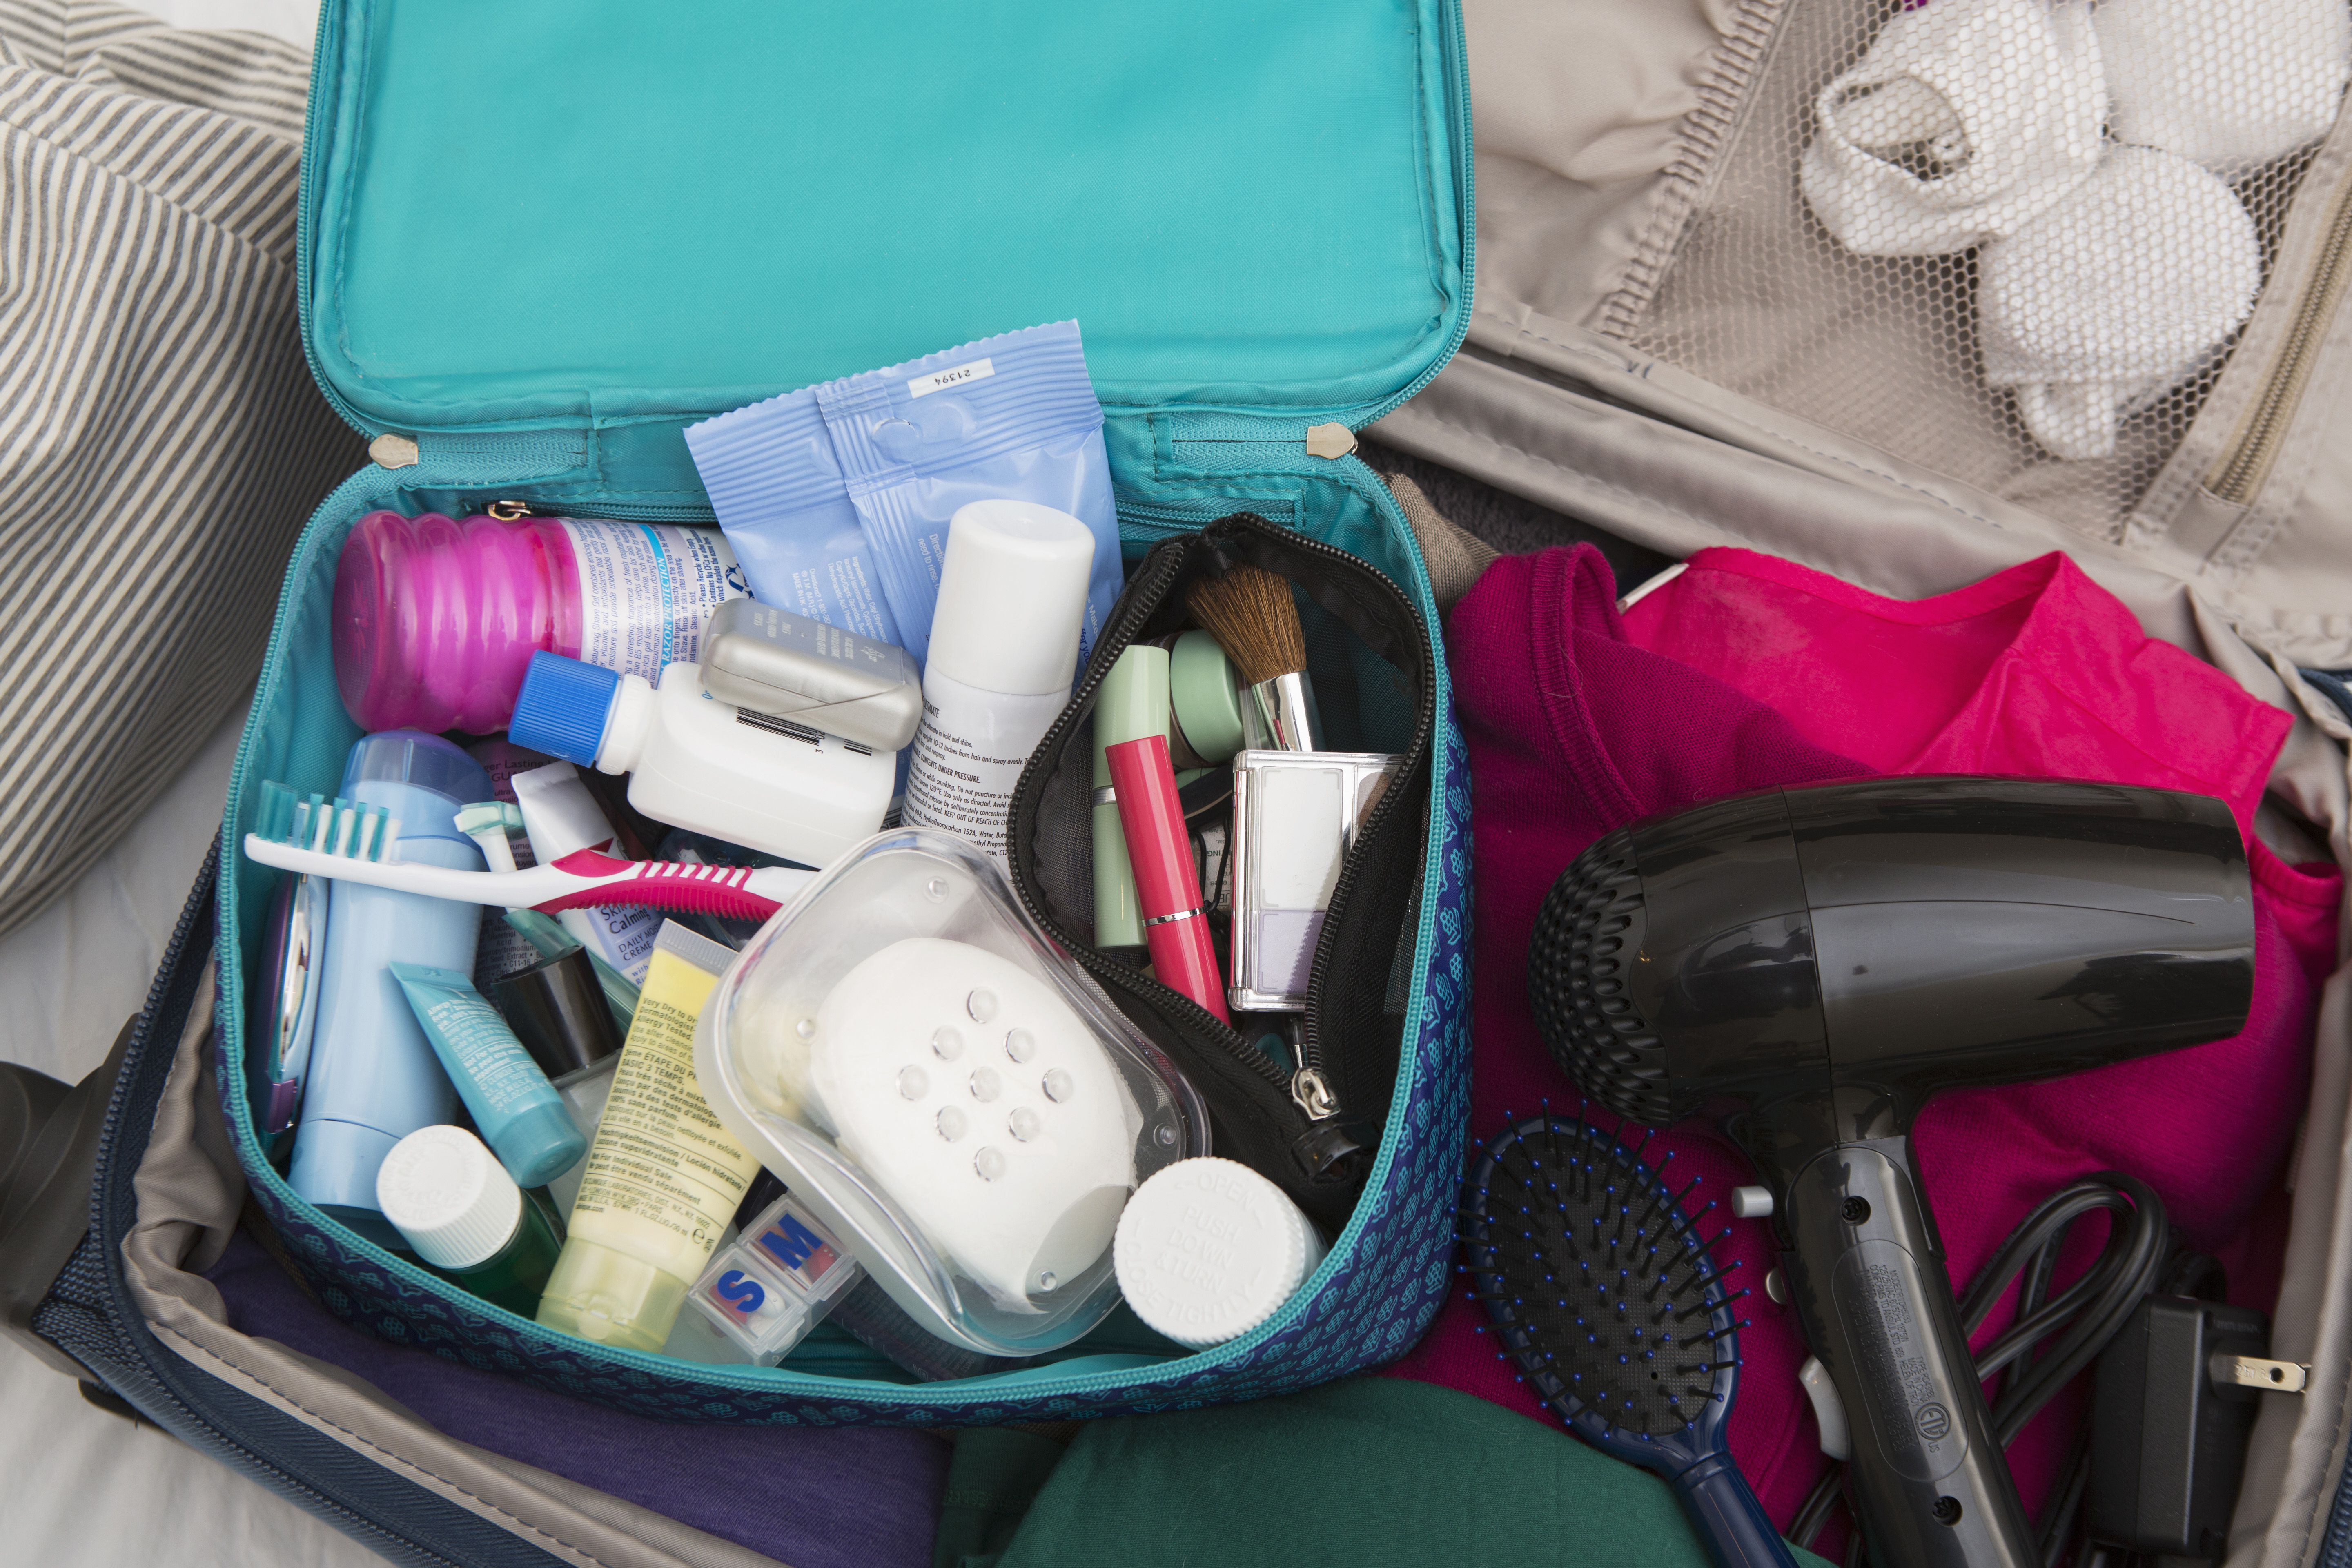 How To Pack Toiletries In One Carry On Bag